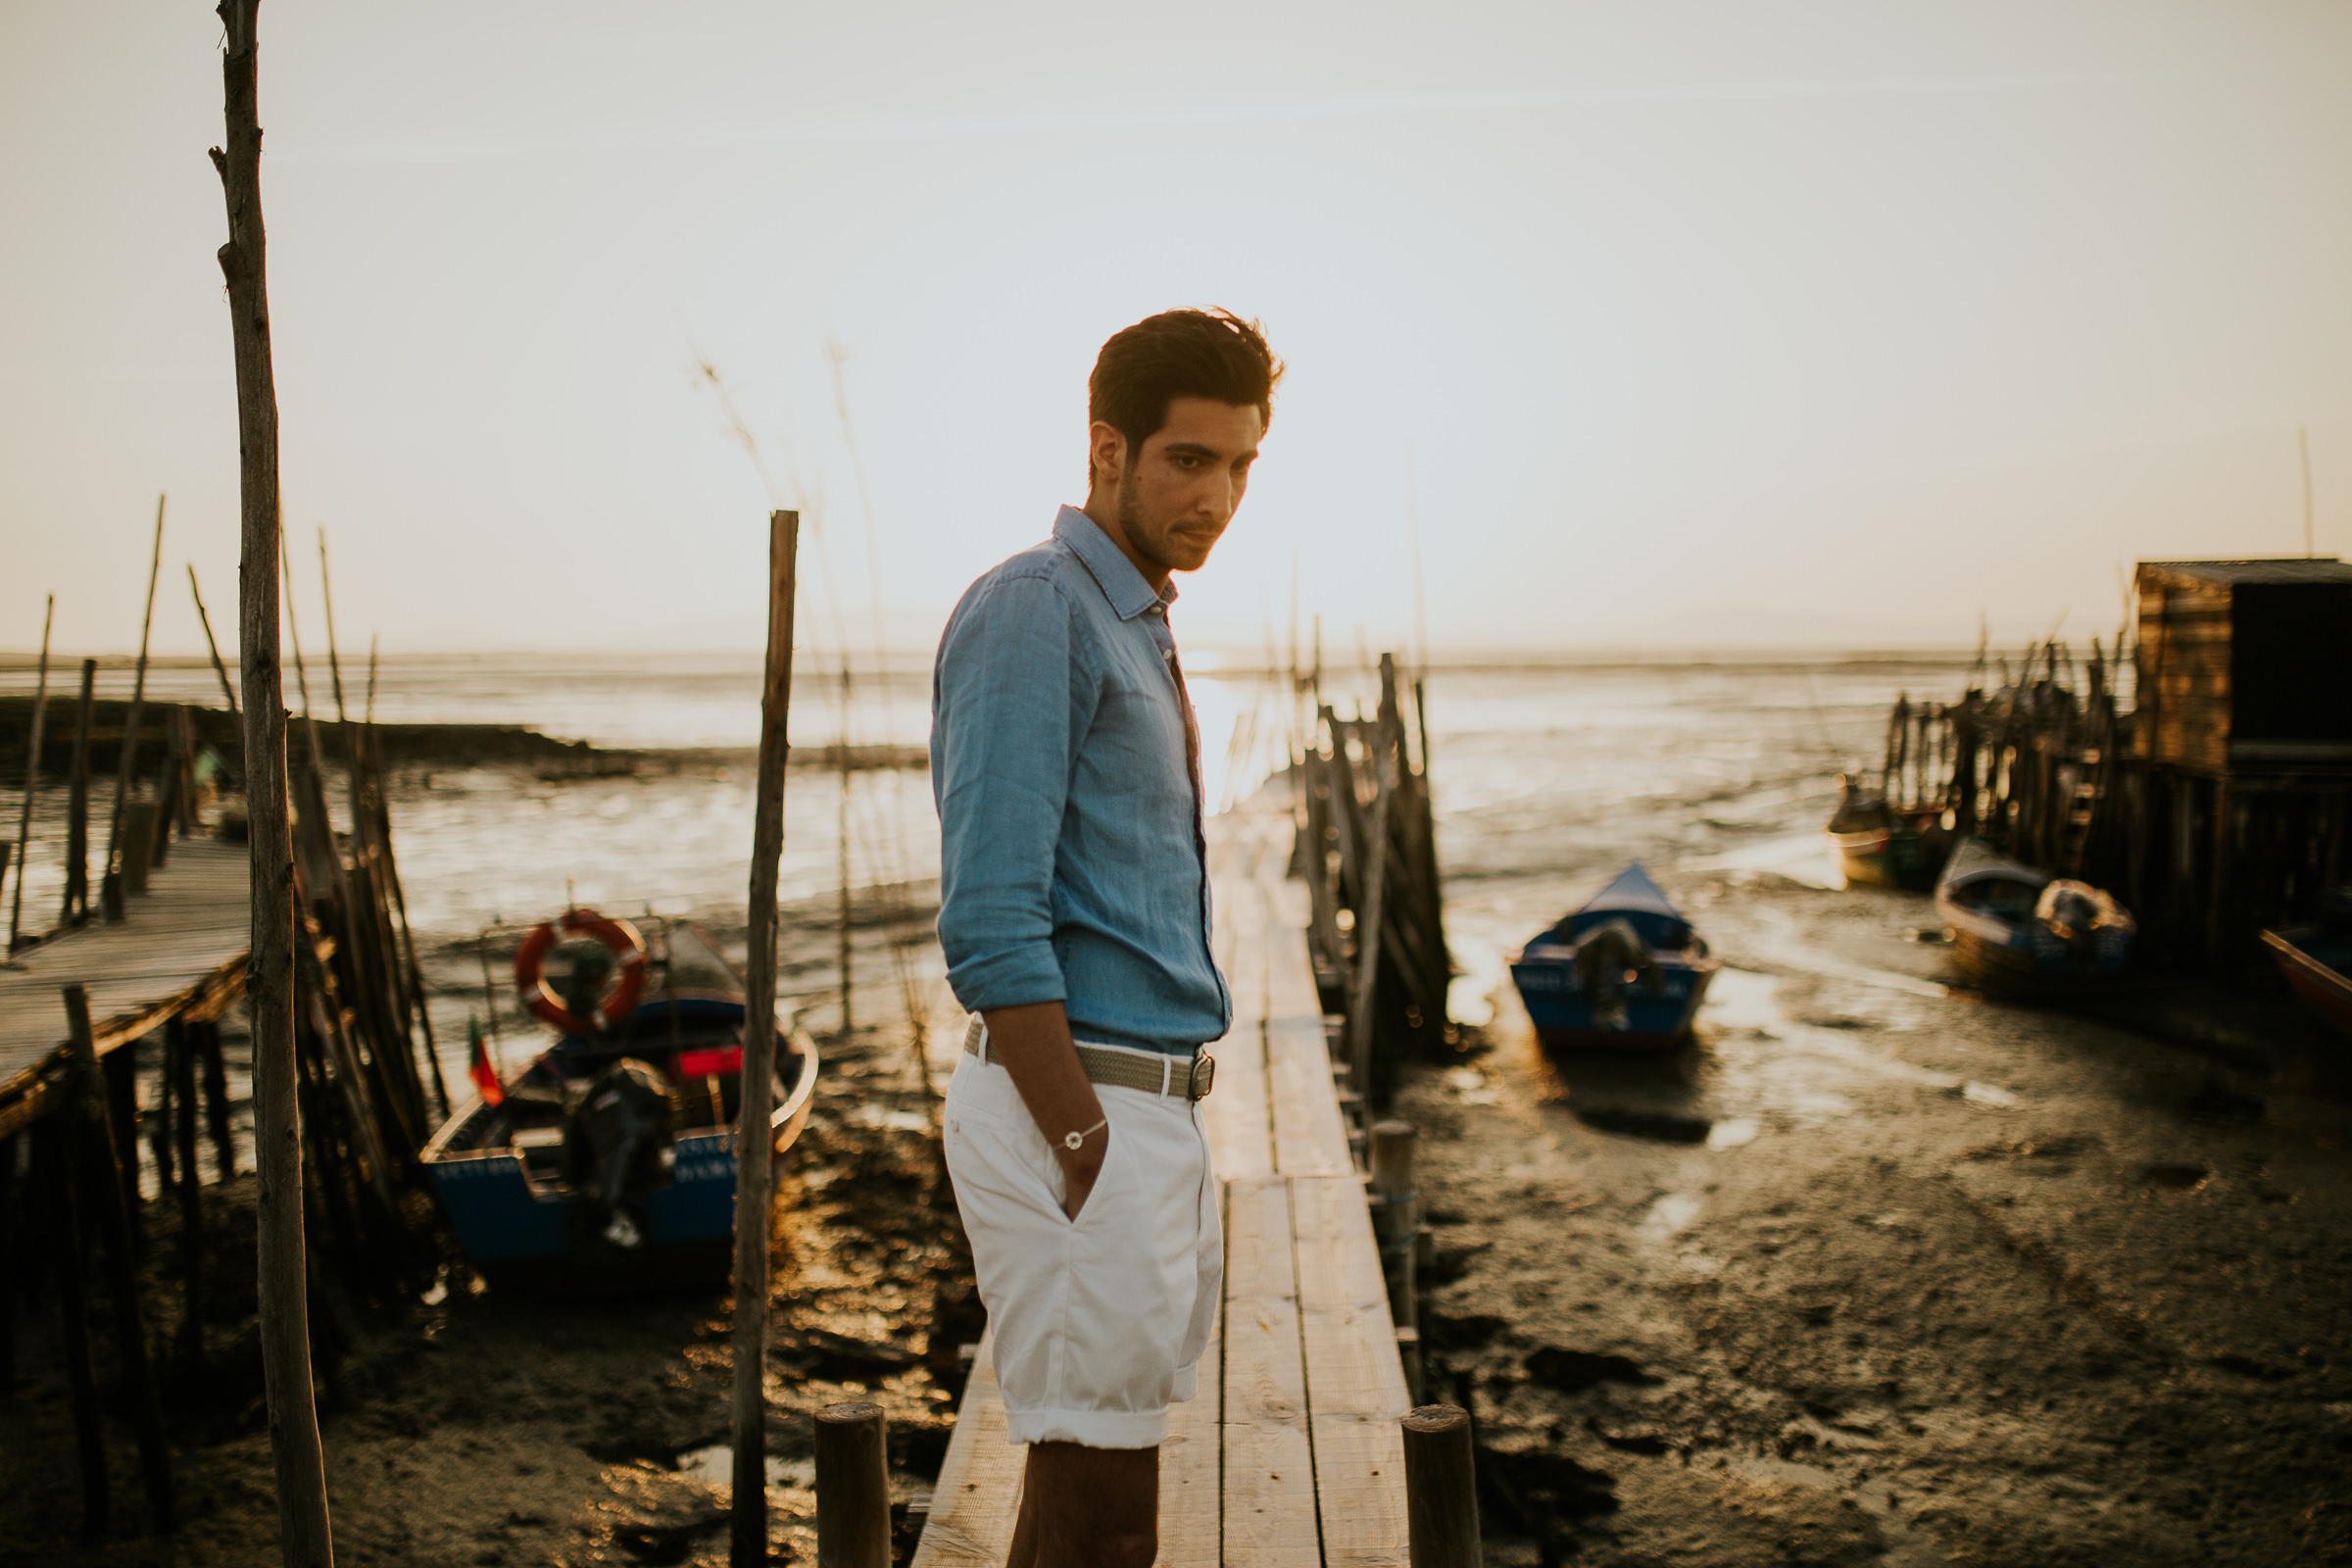 Centered guy looking down on a wooden dock during golden hour